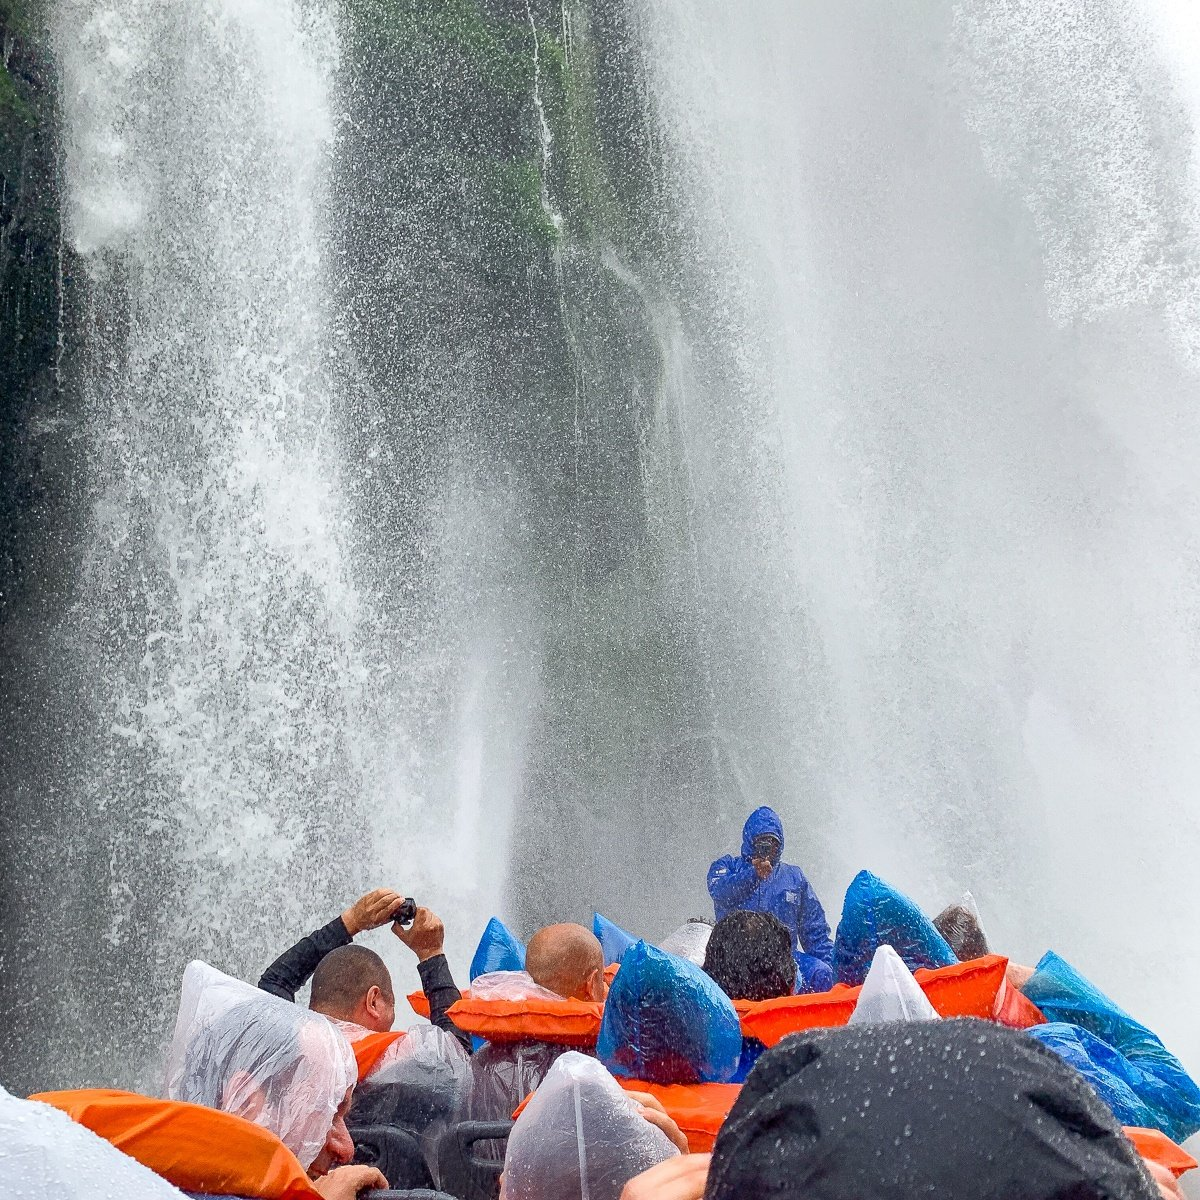 Boat tour of Iguazu Falls